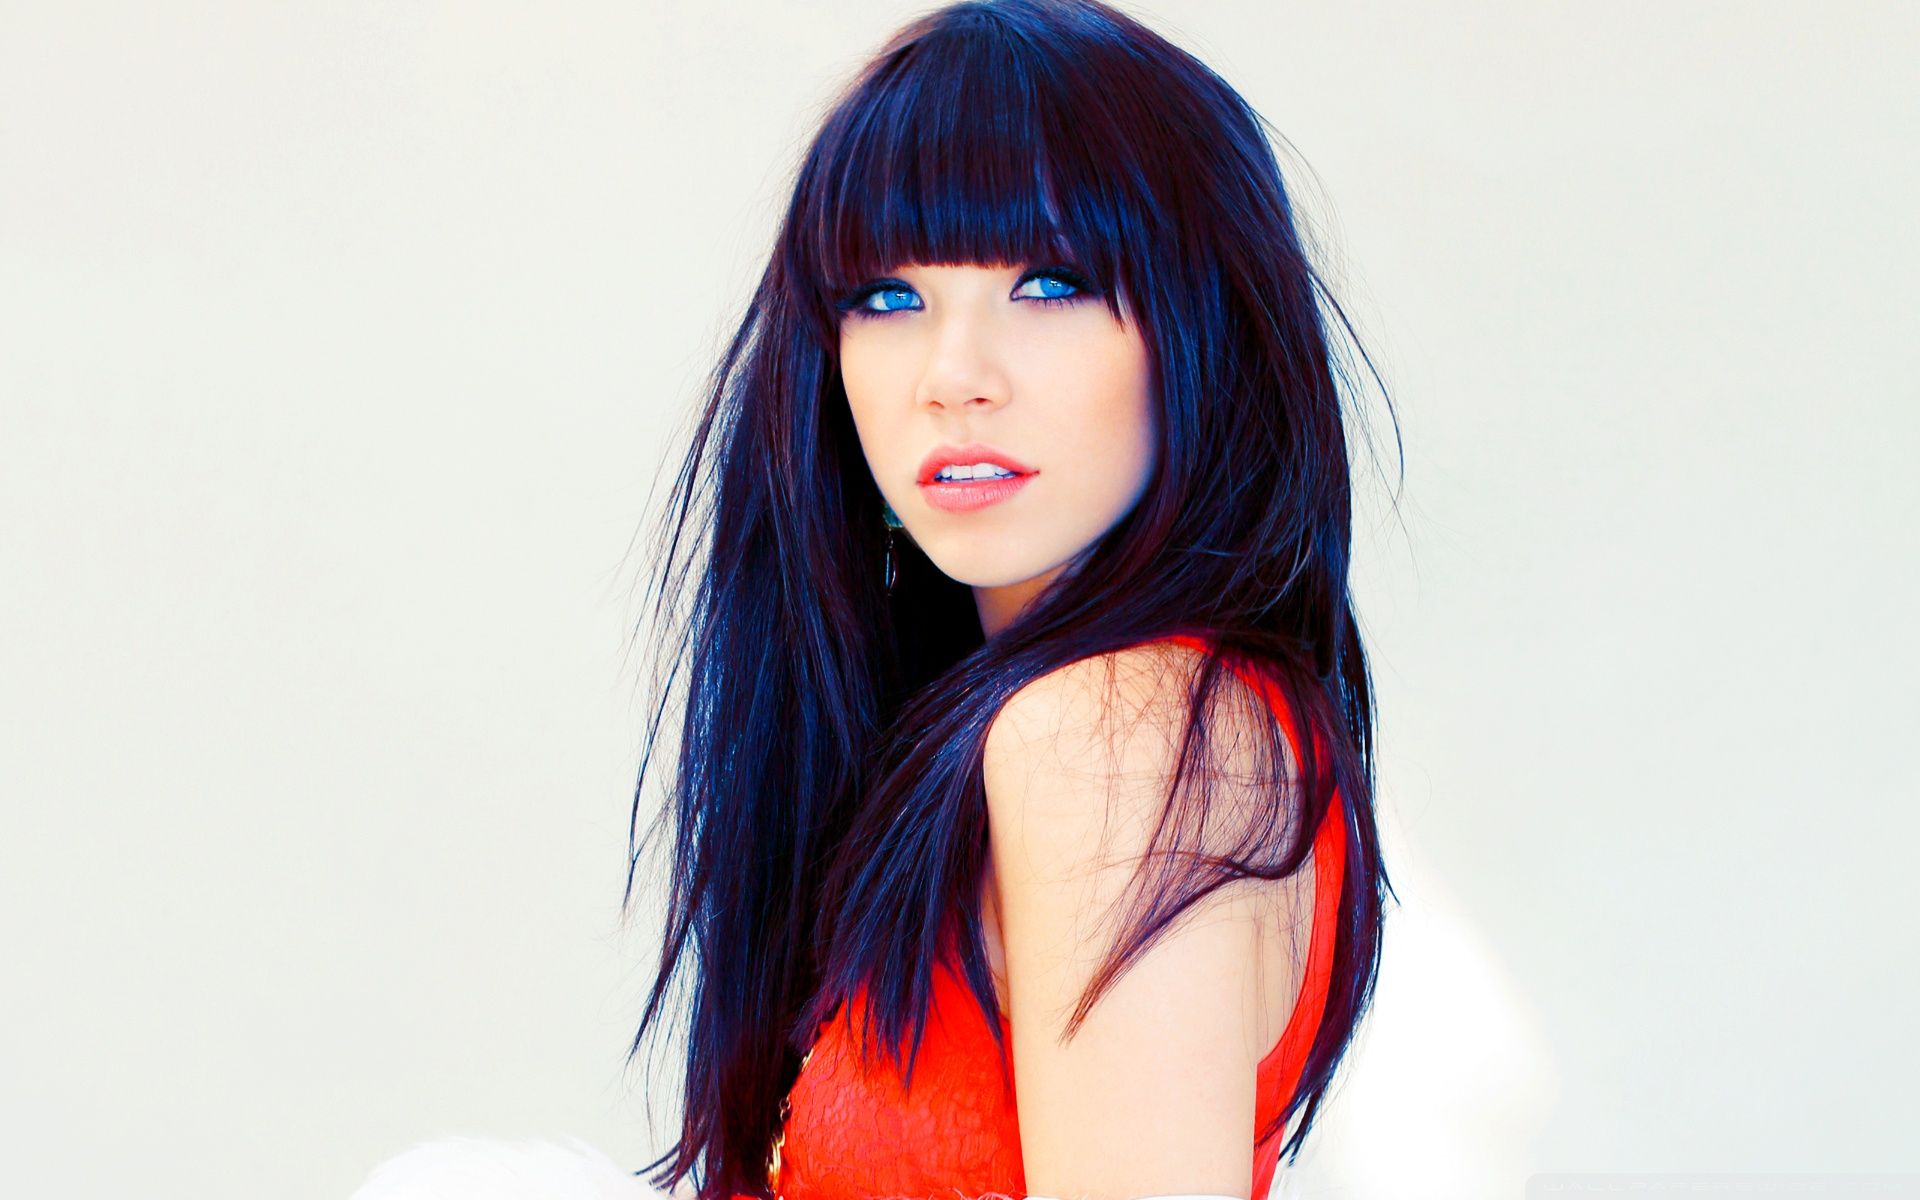 Carly Rae Phone number, Email Id, Fanmail, Instagram, Tiktok, and Contact Details